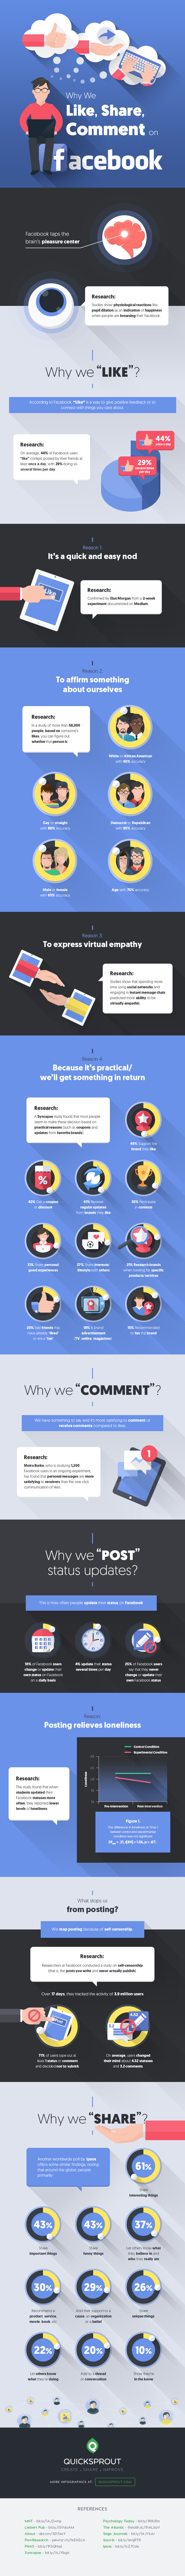 The Science Behind Why We Like, Comment & Share On Facebook - #infographic | MarketingHits | Scoop.it